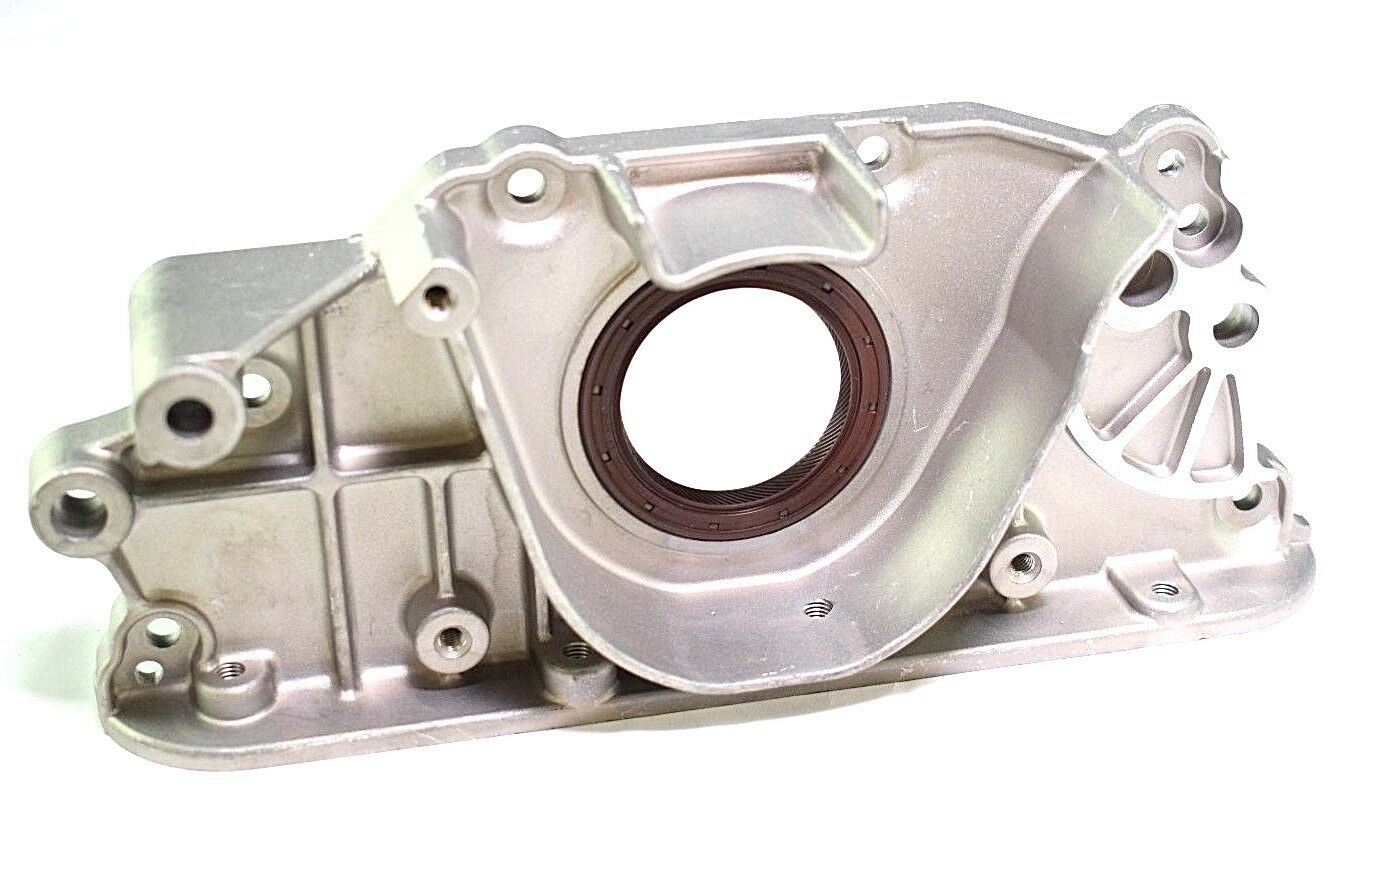 Alfa Romeo 916 Spider V6 Rear Crankshaft Oil Seal Housing New Nord Engine Diagram This Is A Brand Genuine Aluminium To Fit The Following